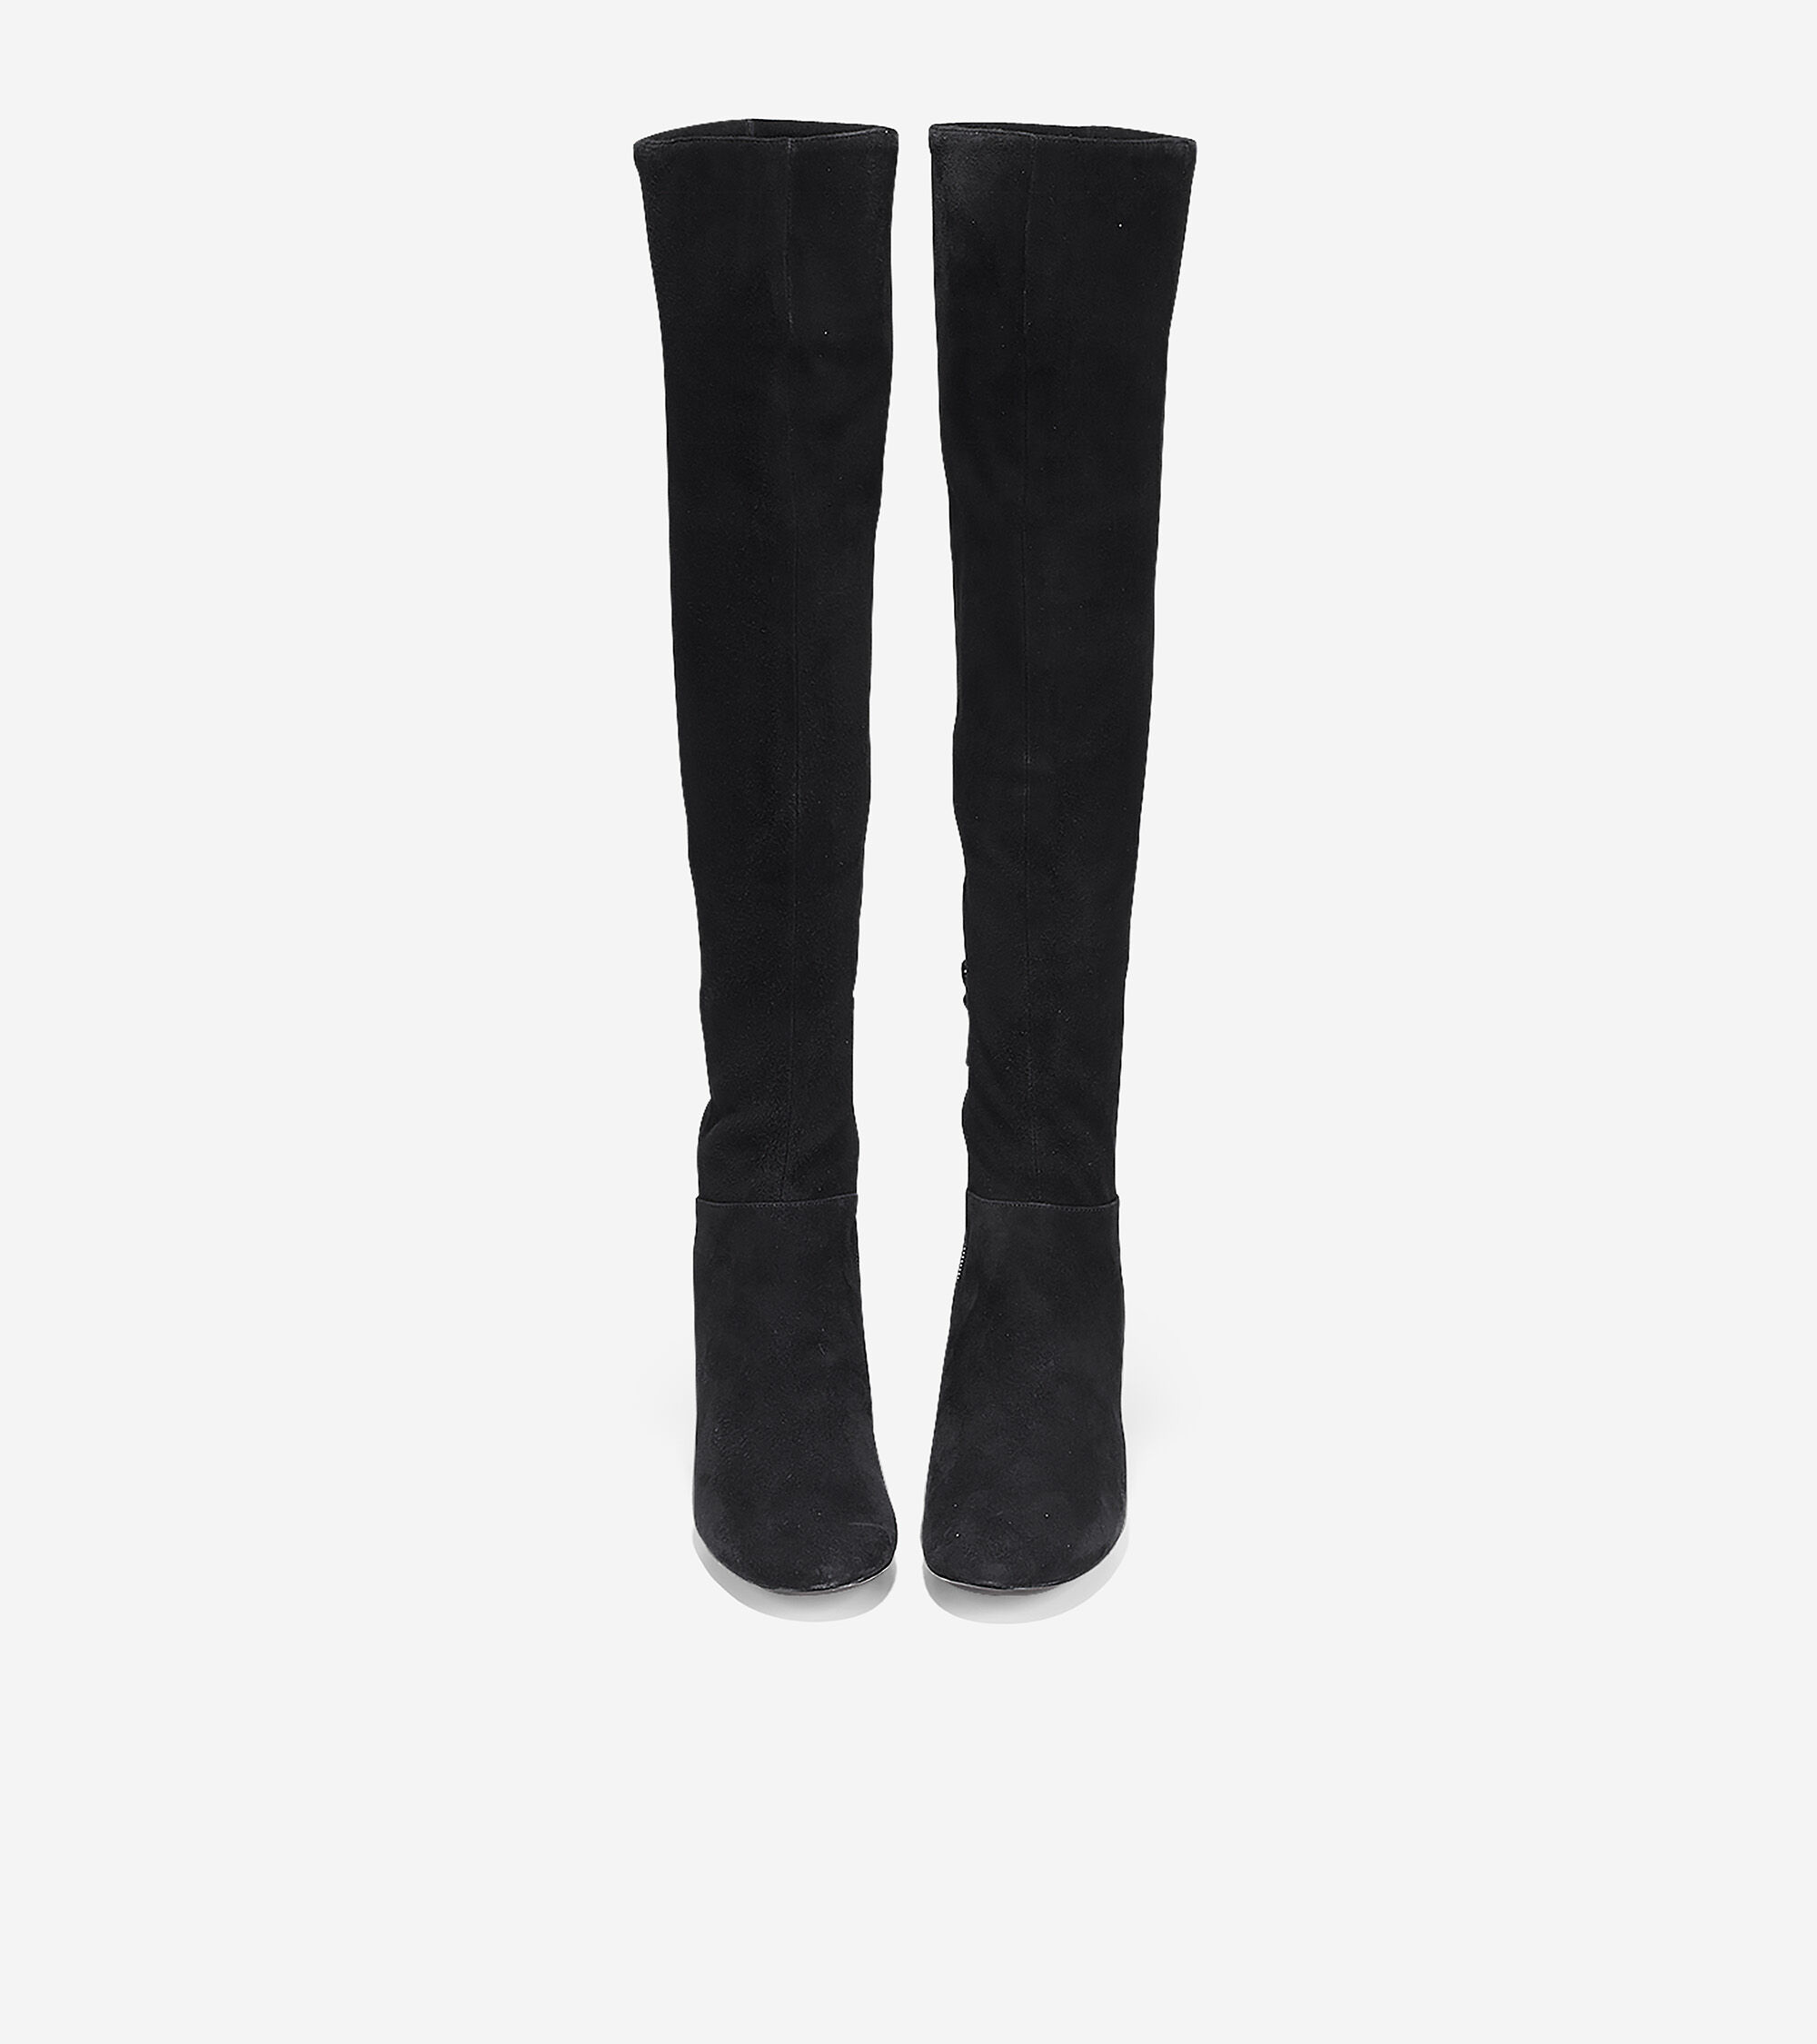 c00db5e59c2 Women s Elnora Over The Knee Boots 60mm in Black